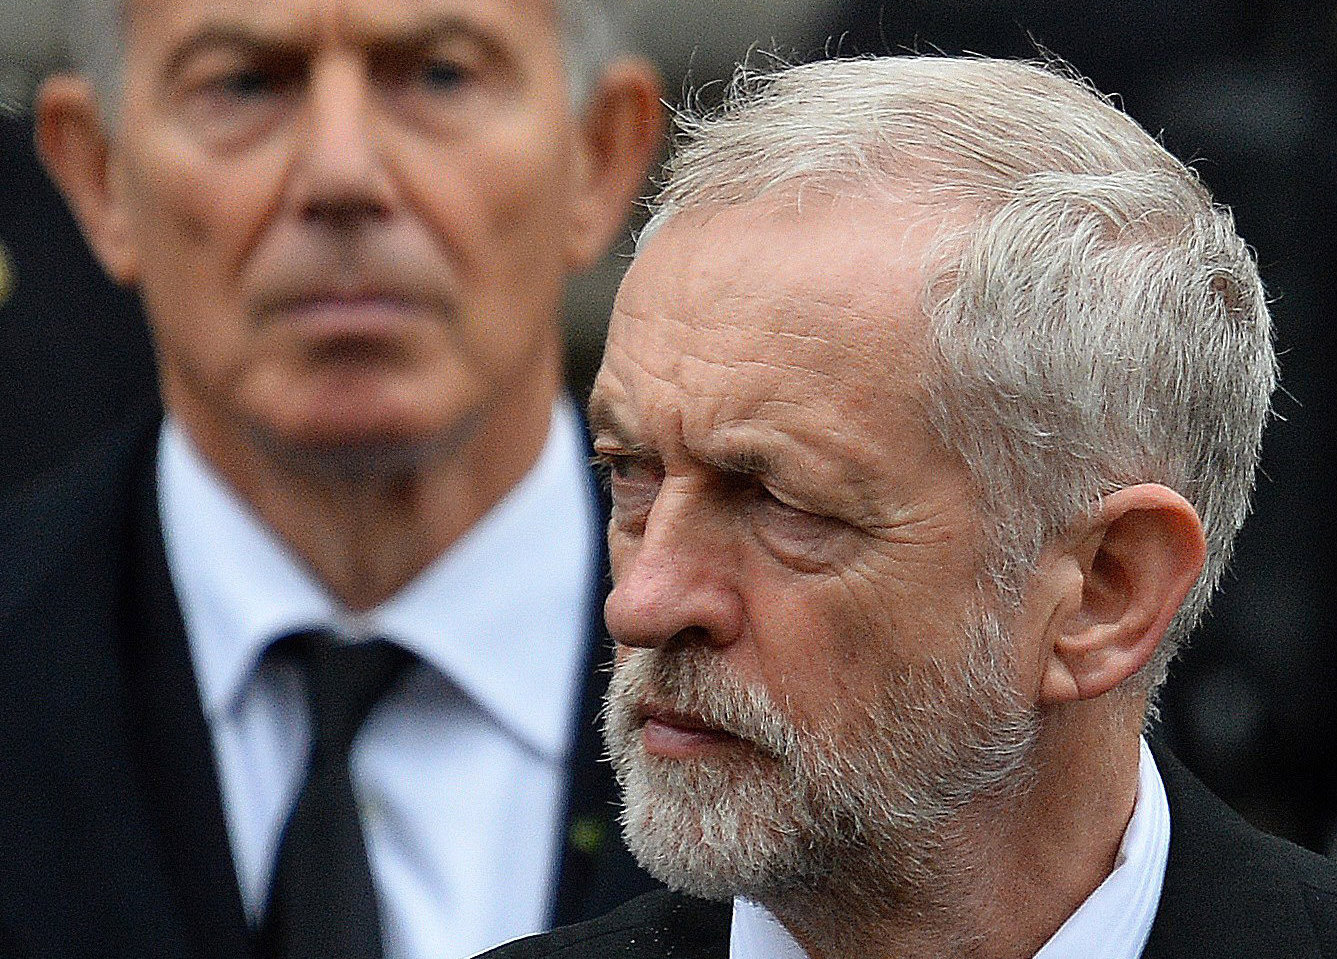 Jeremy Corbyn is similar to Labour party hacks of previous generations like Tony Blair